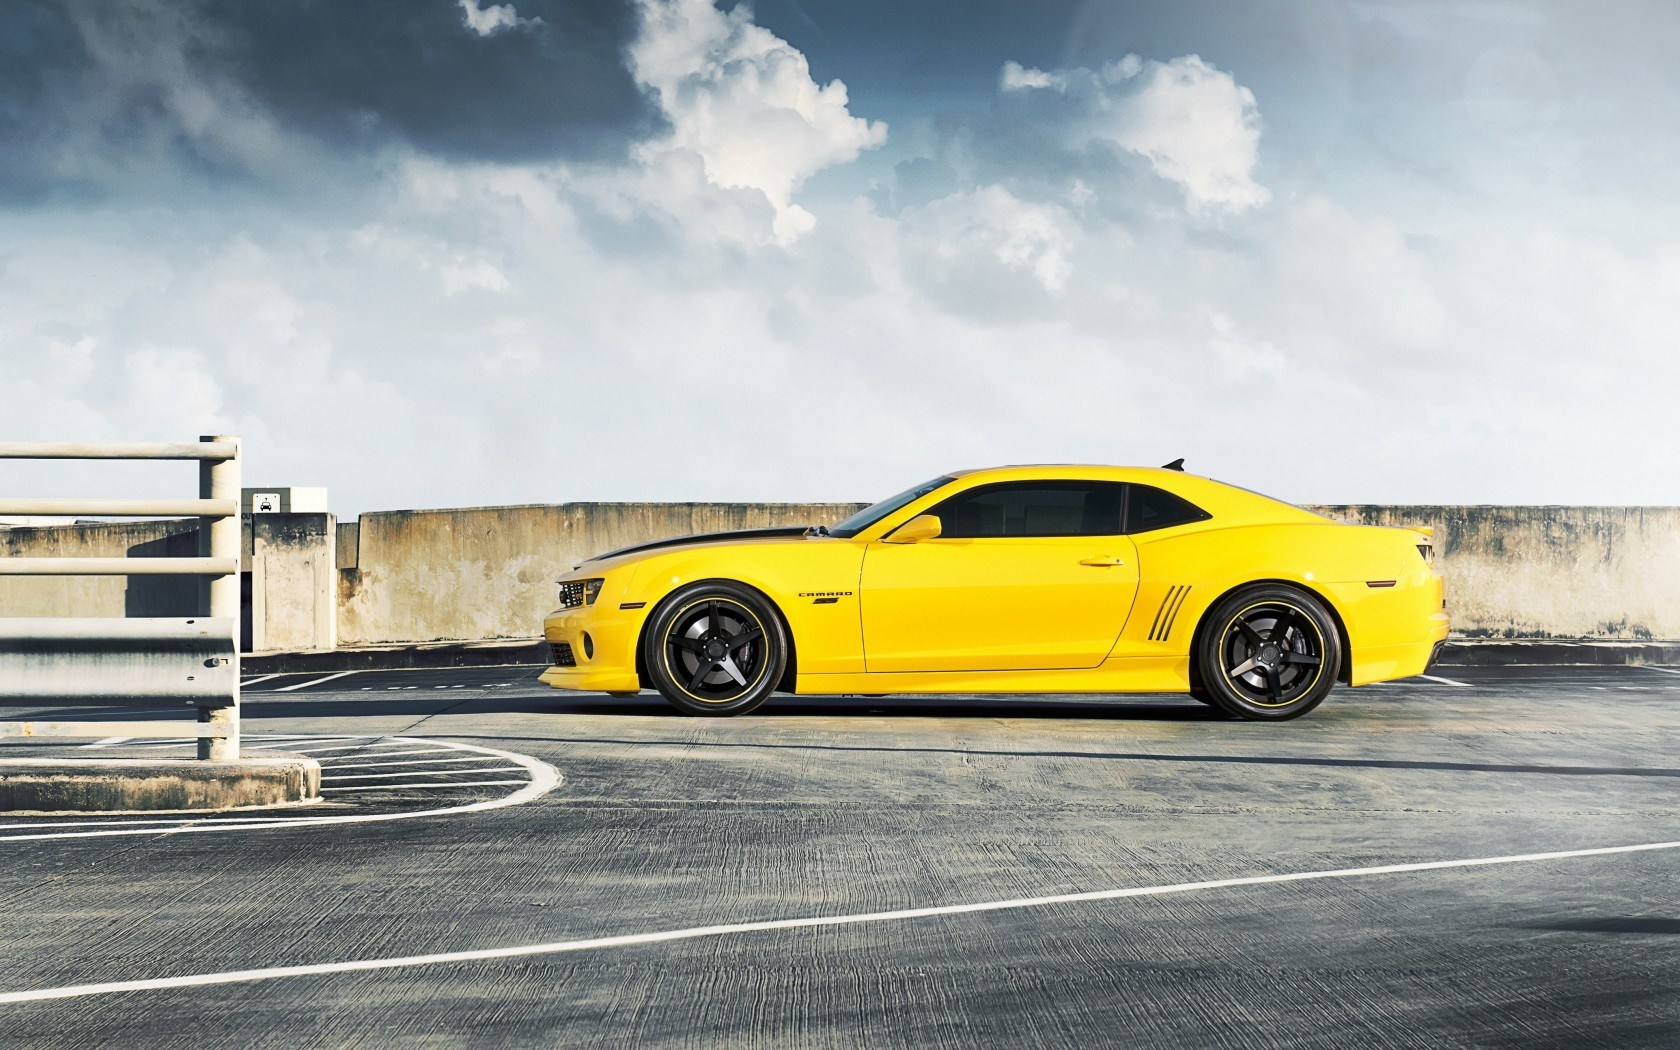 Chevrolet Camaro RS Yellow Car